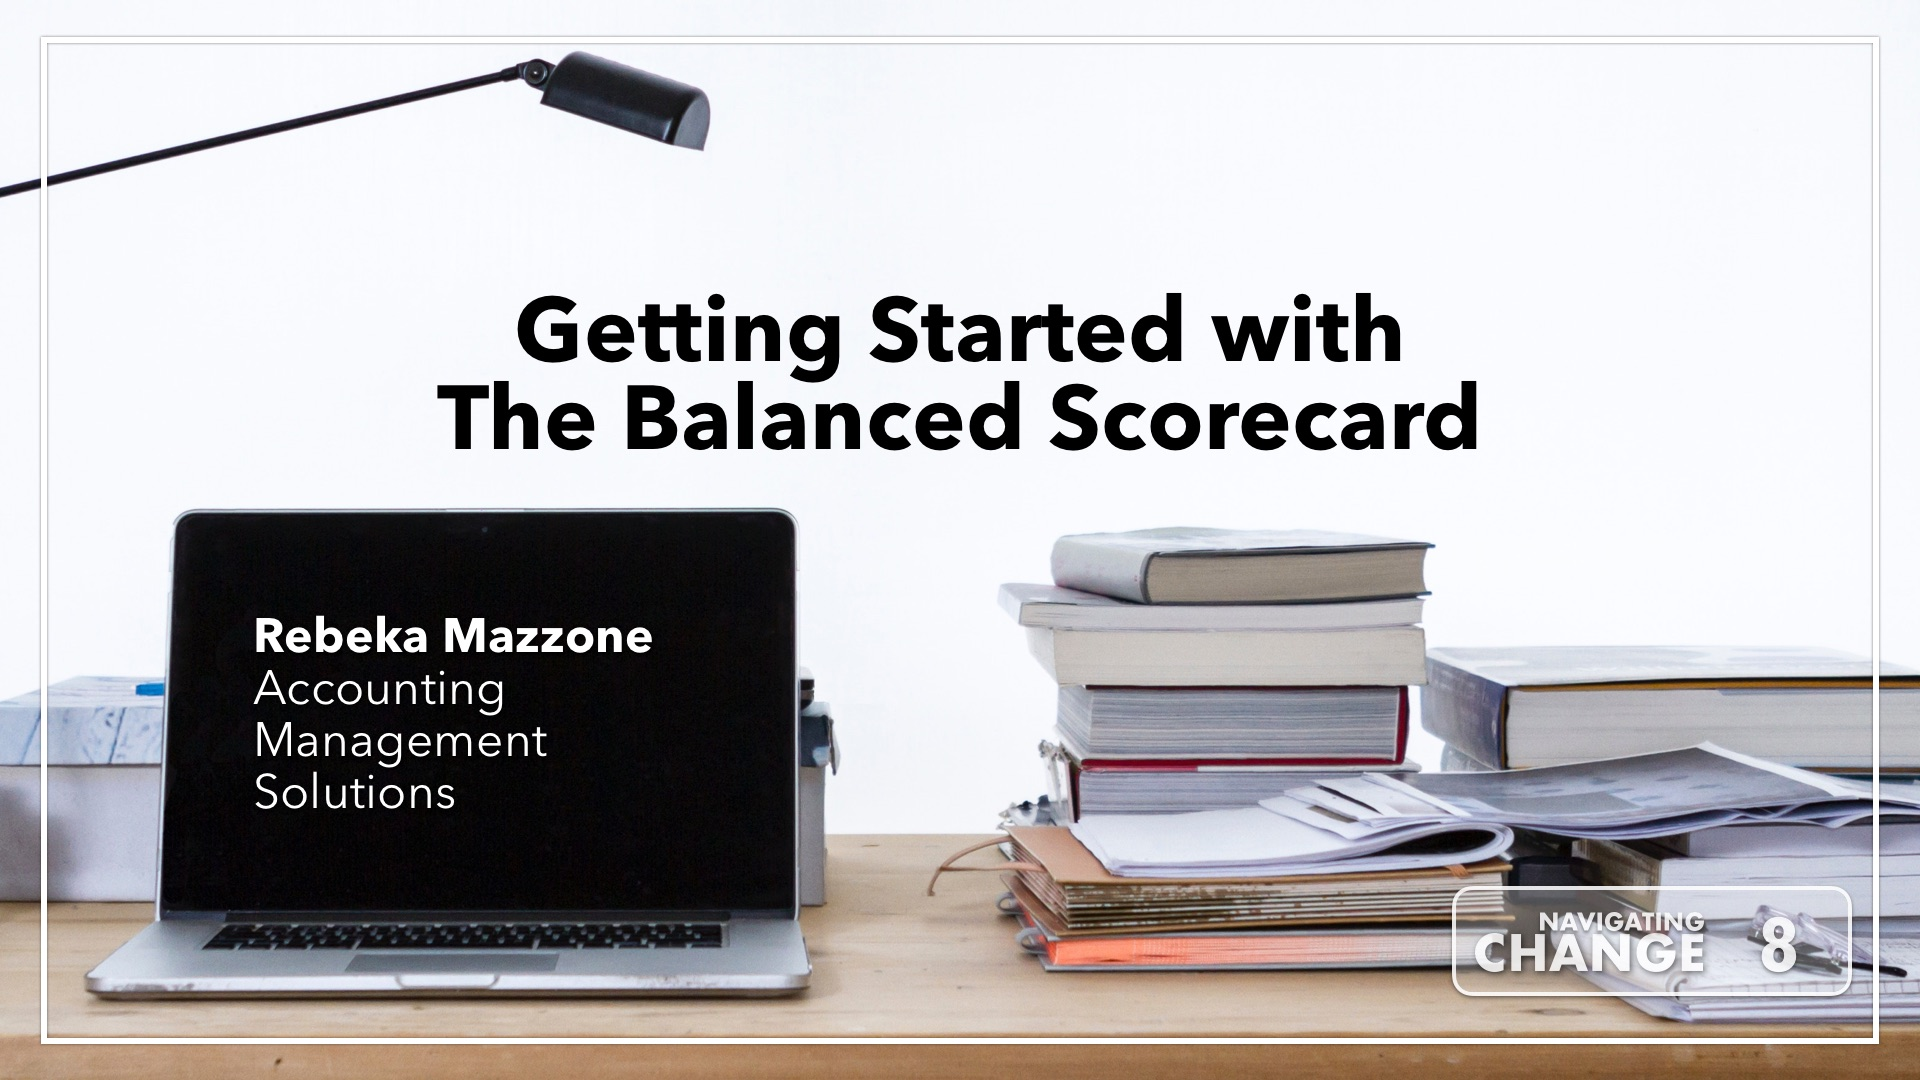 Listen to Getting Started with The Balanced Scorecard with Rebeka Mazzone on Navigating Change The Education Podcast